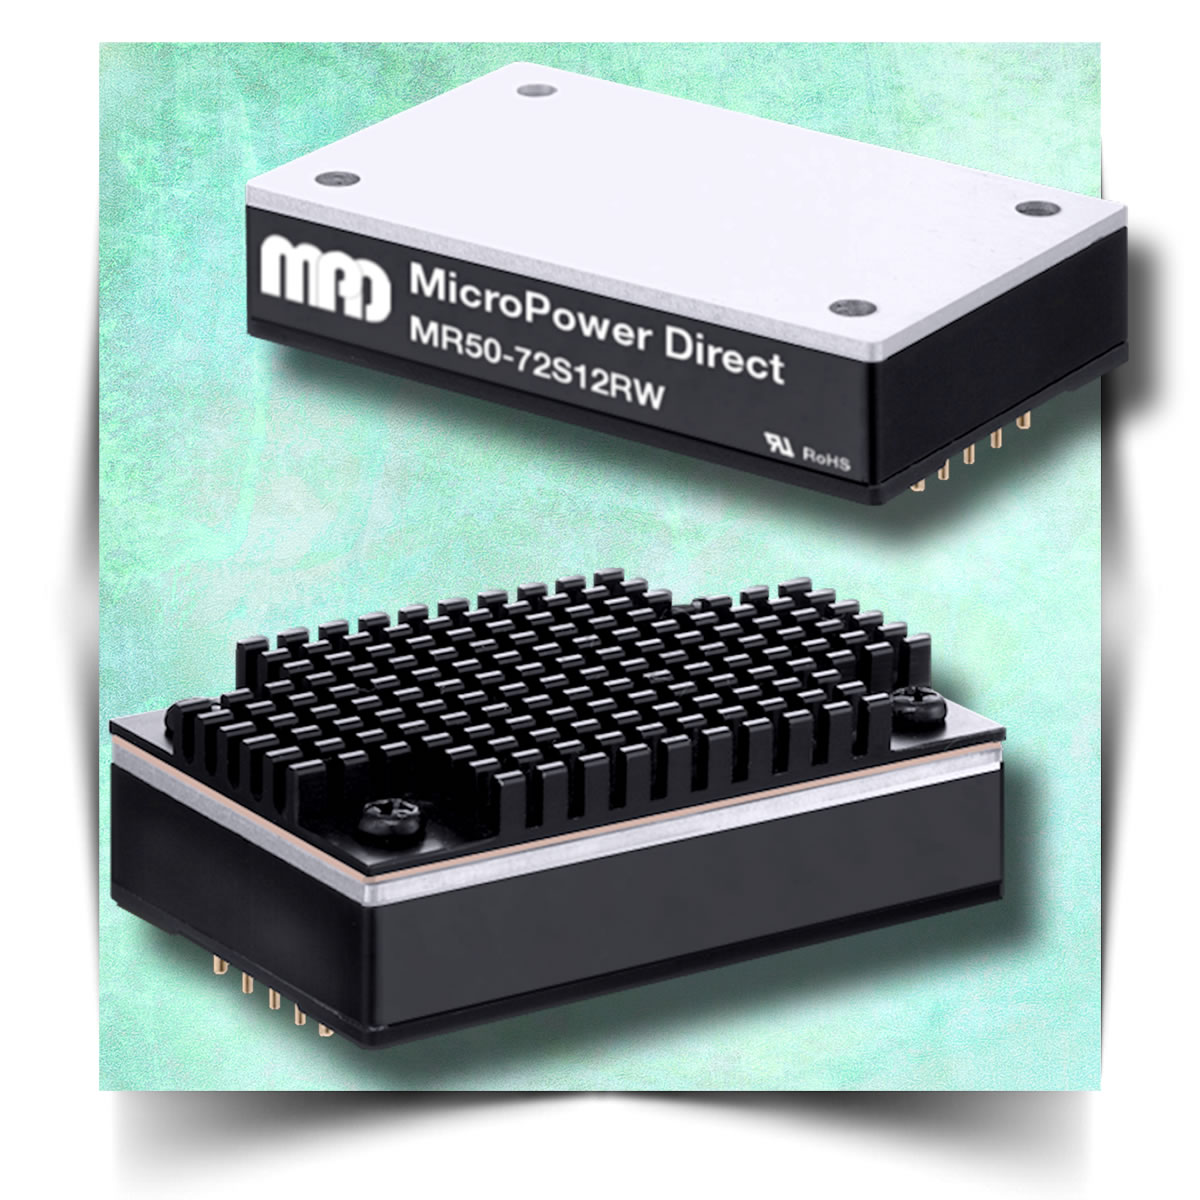 MicroPower Direct offers compact, wide-input, 50W railway DC/DC converters